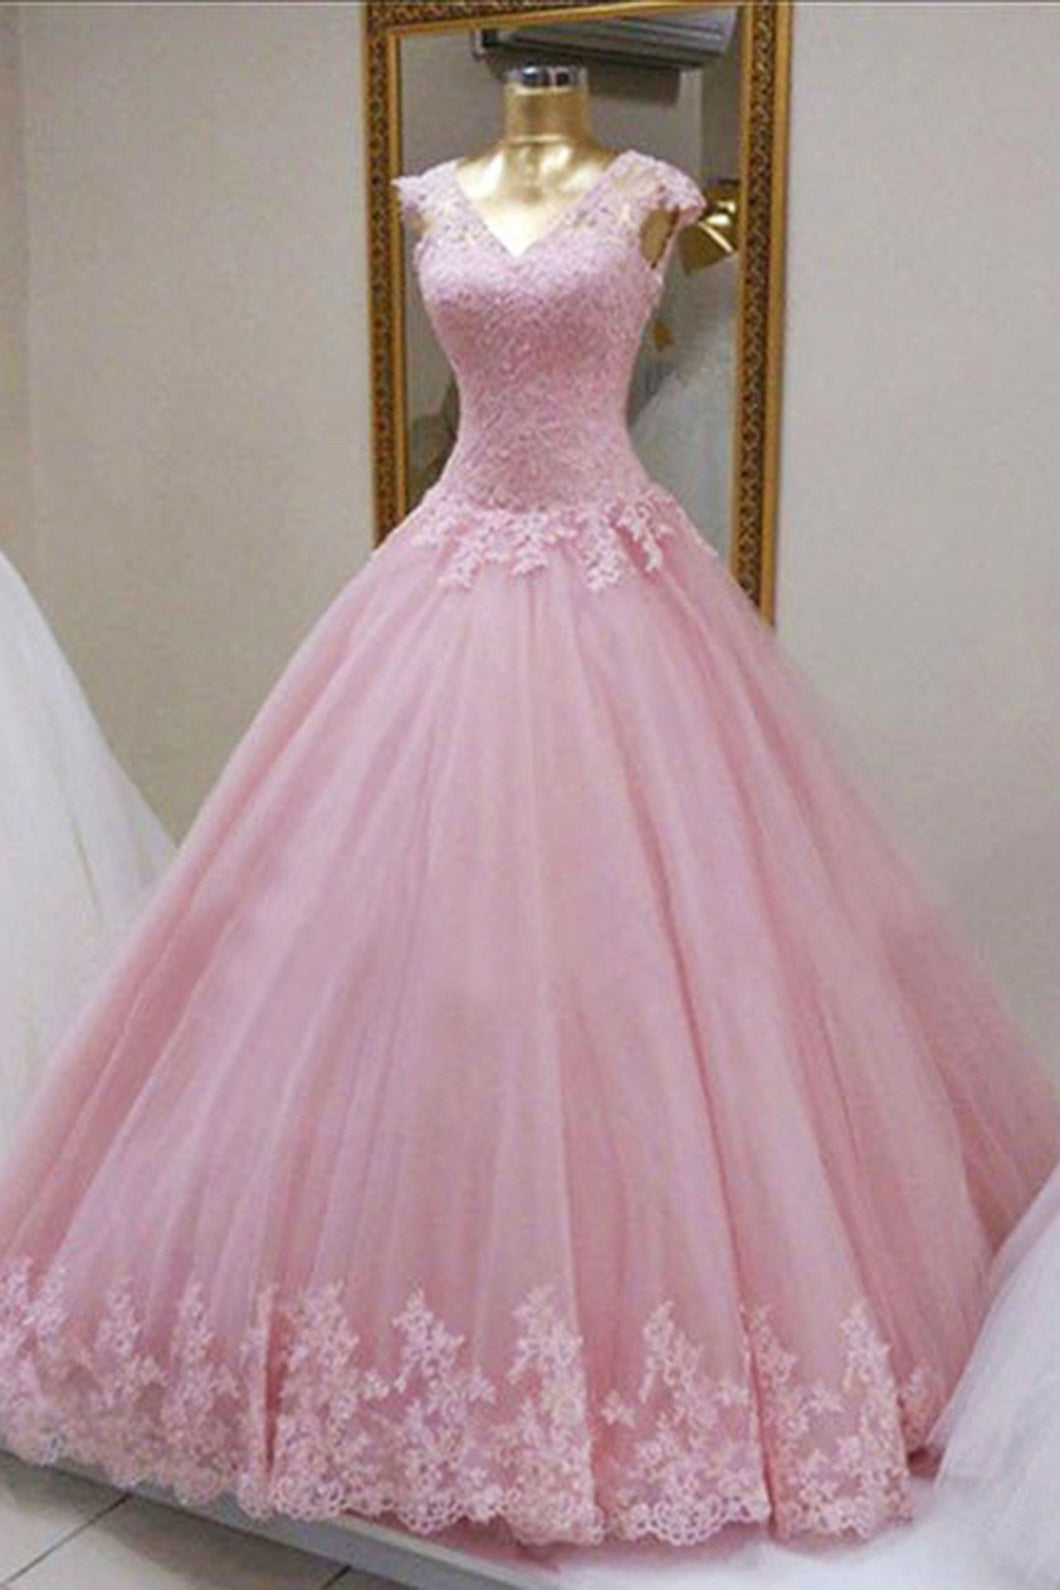 Sweet 16 Dresses | Pink organza lace applique long dress,  princess ball gown dresses